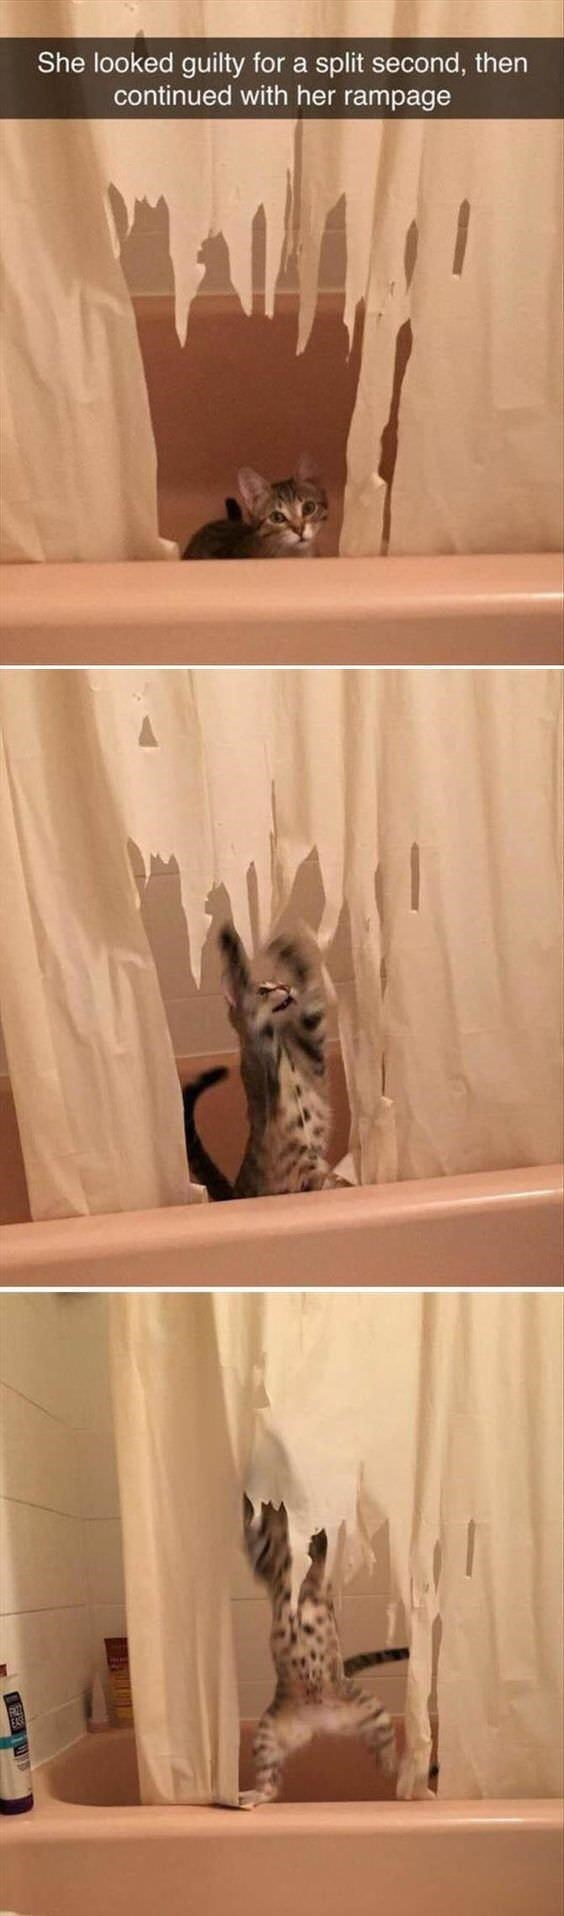 Cat - She looked guilty for a split second, then continued with her rampage